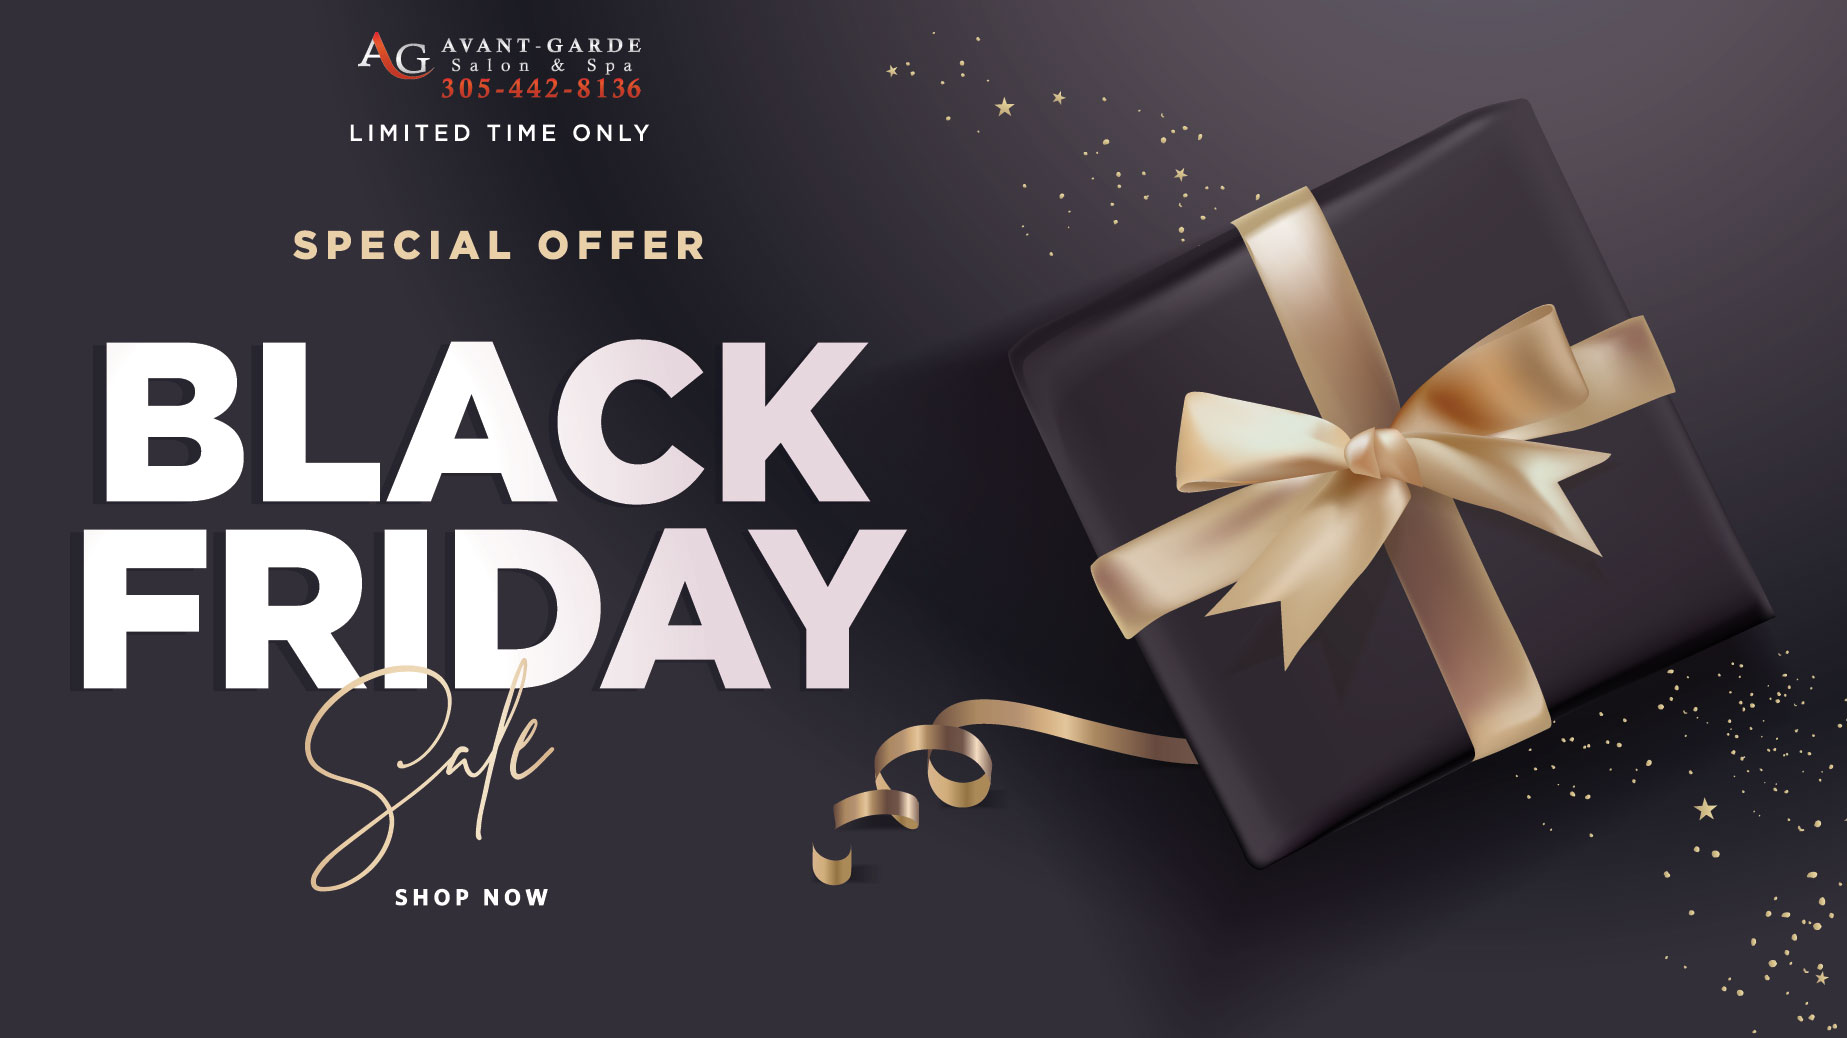 Black Friday Sale | Avant Garde Salon Gift Cards